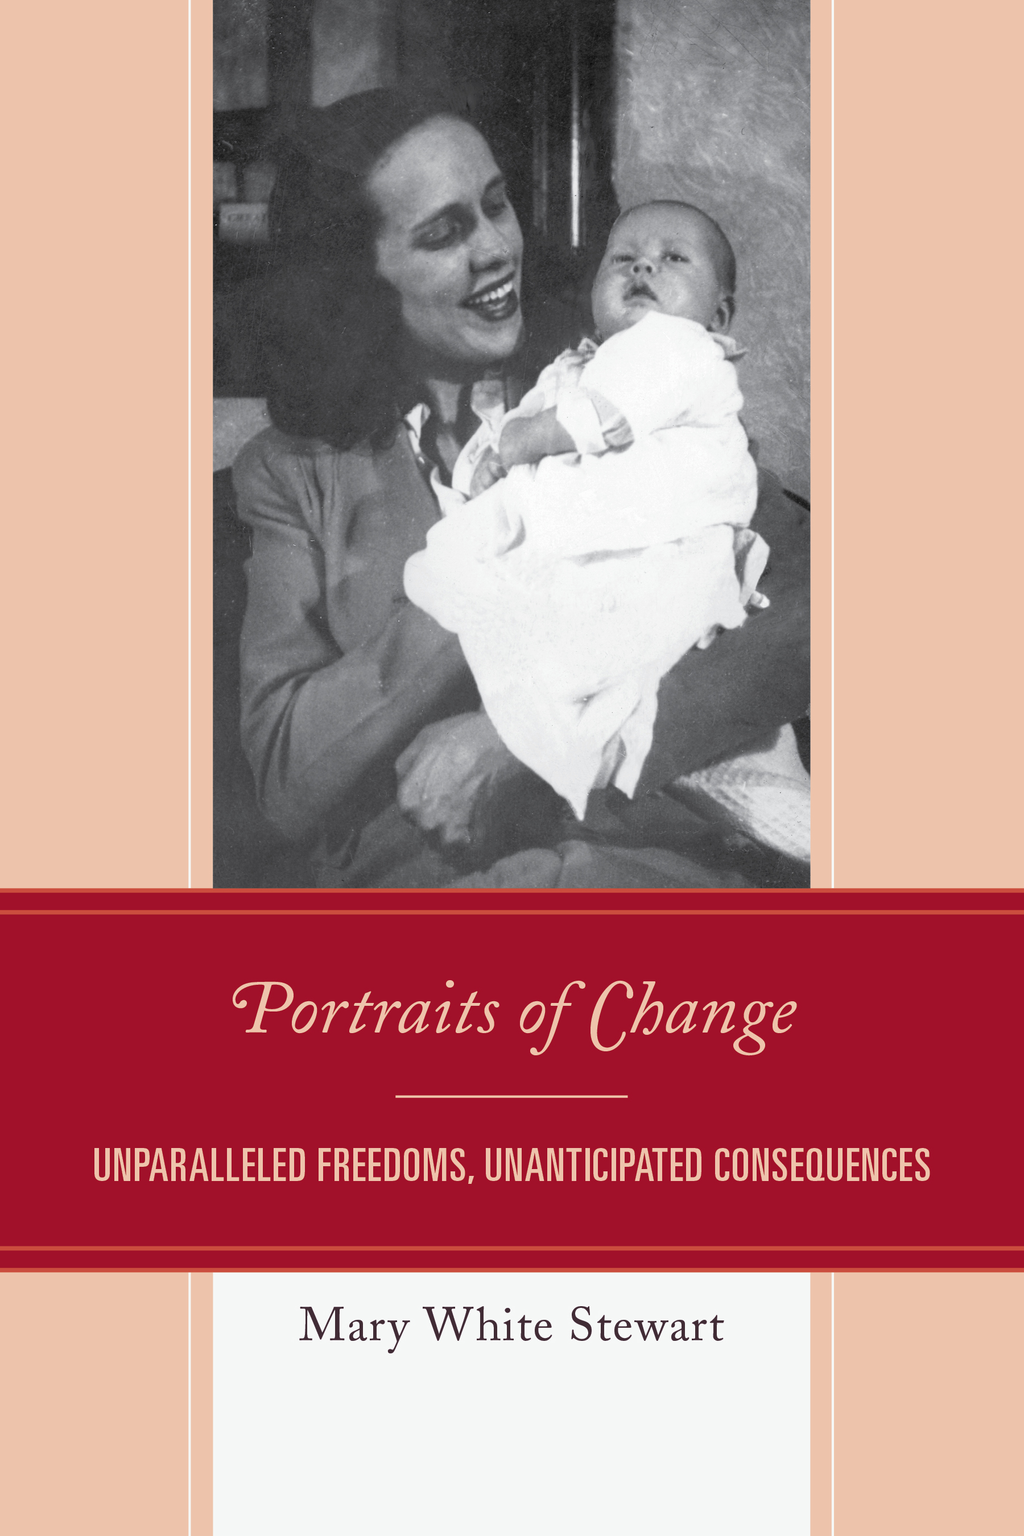 Portraits of Change